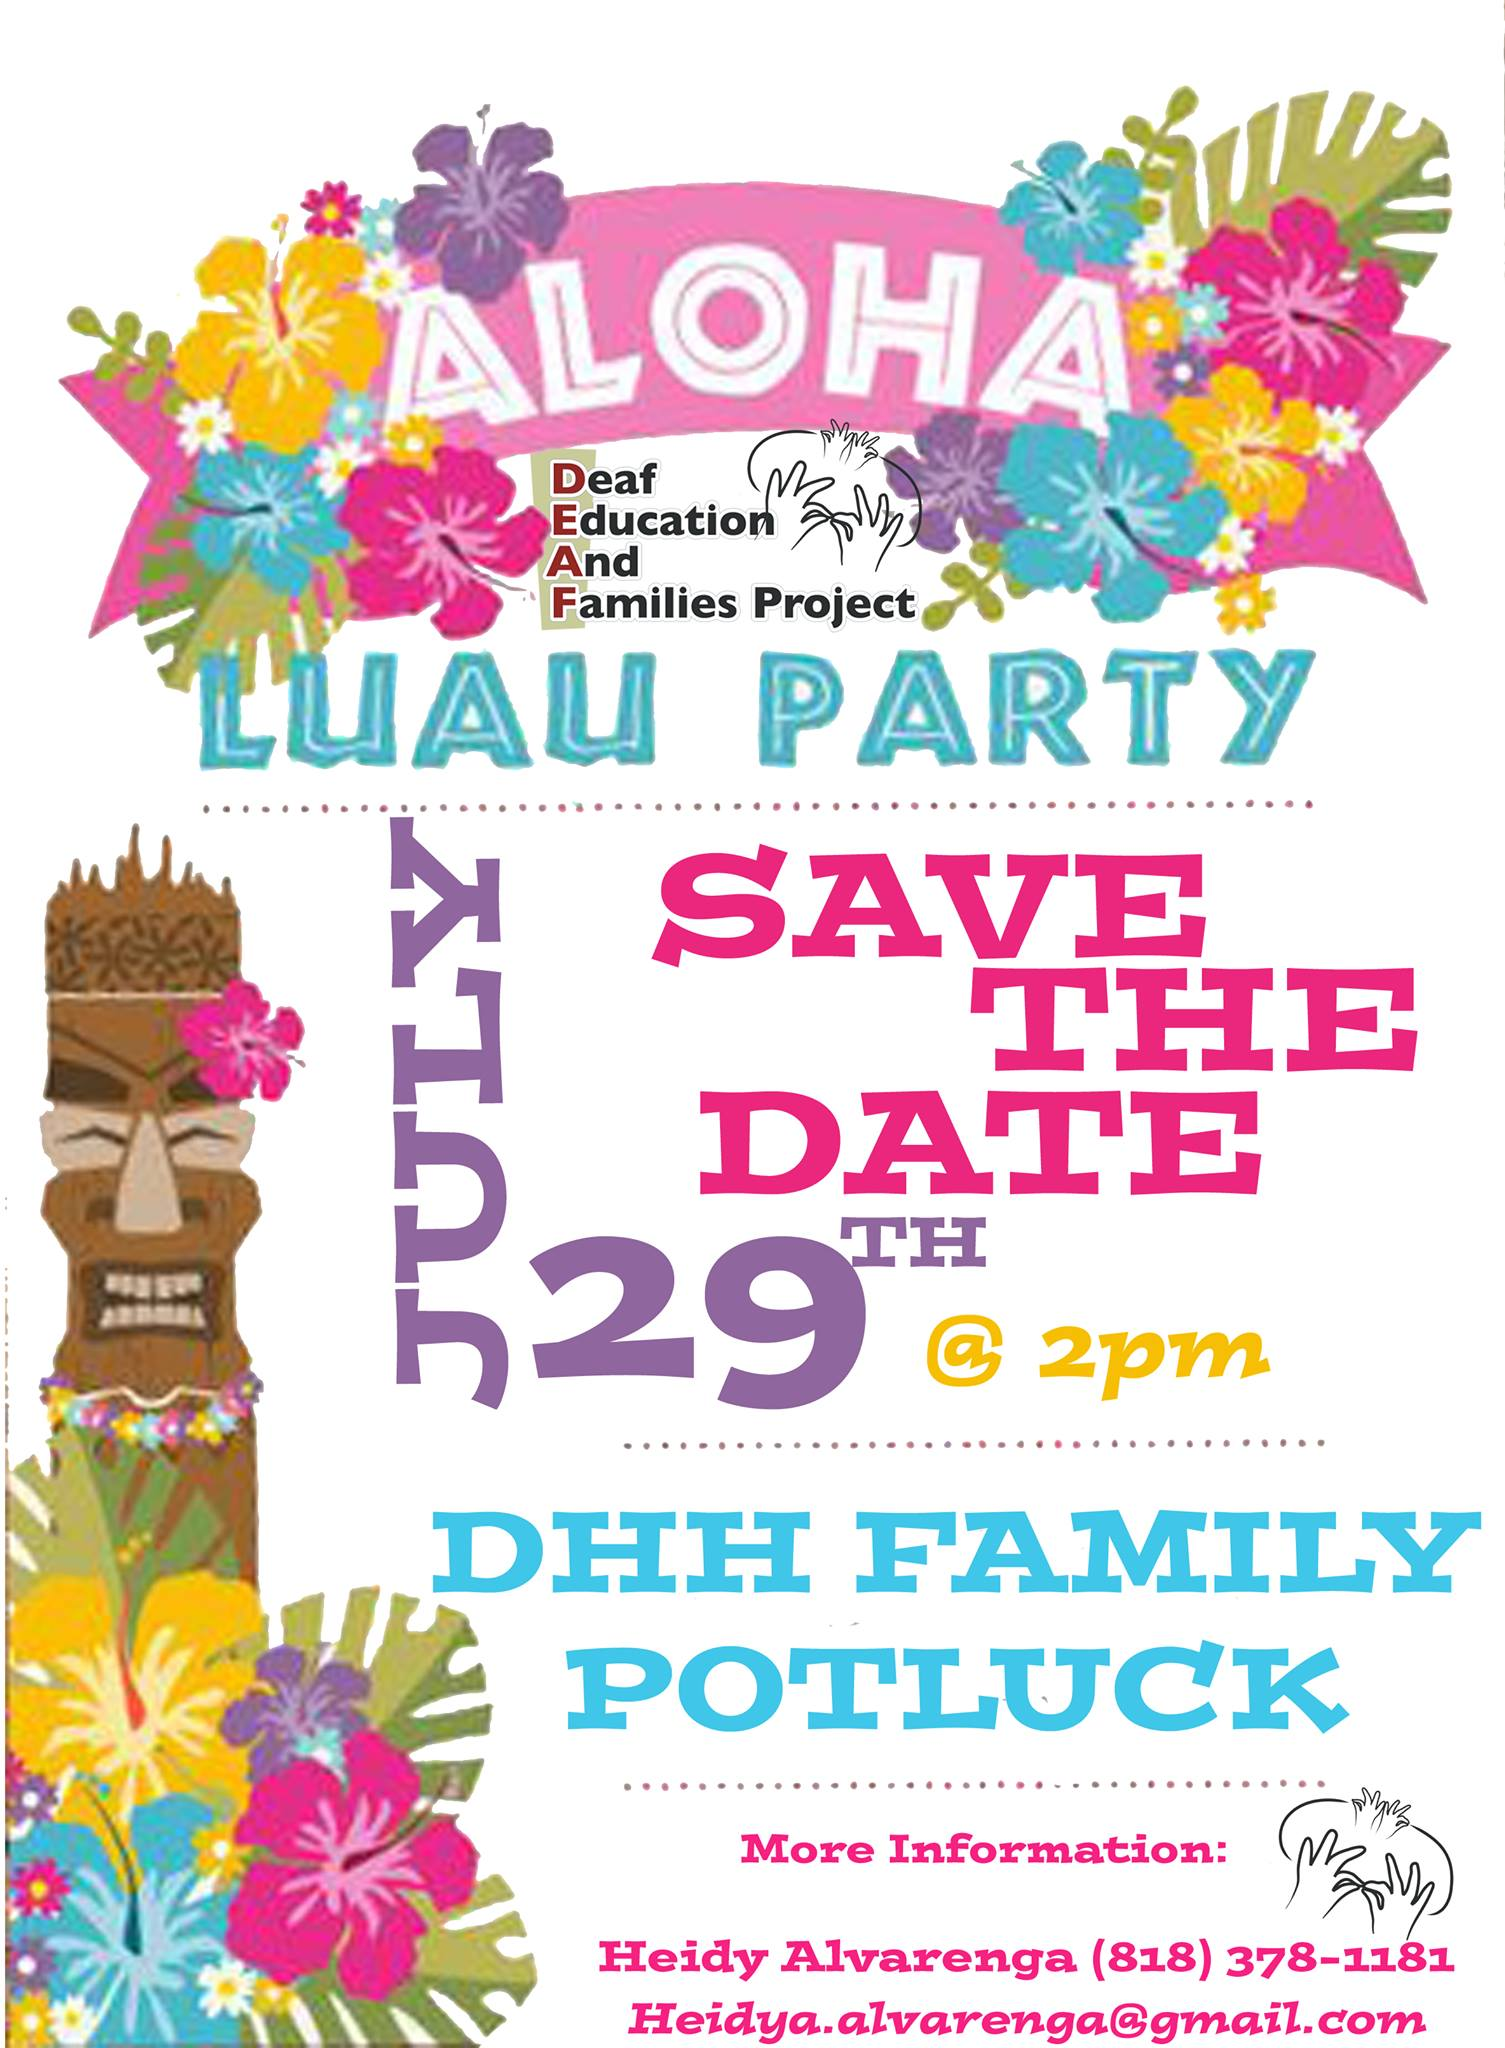 Deaf and Hard of Hearing Family Potluck and Luau